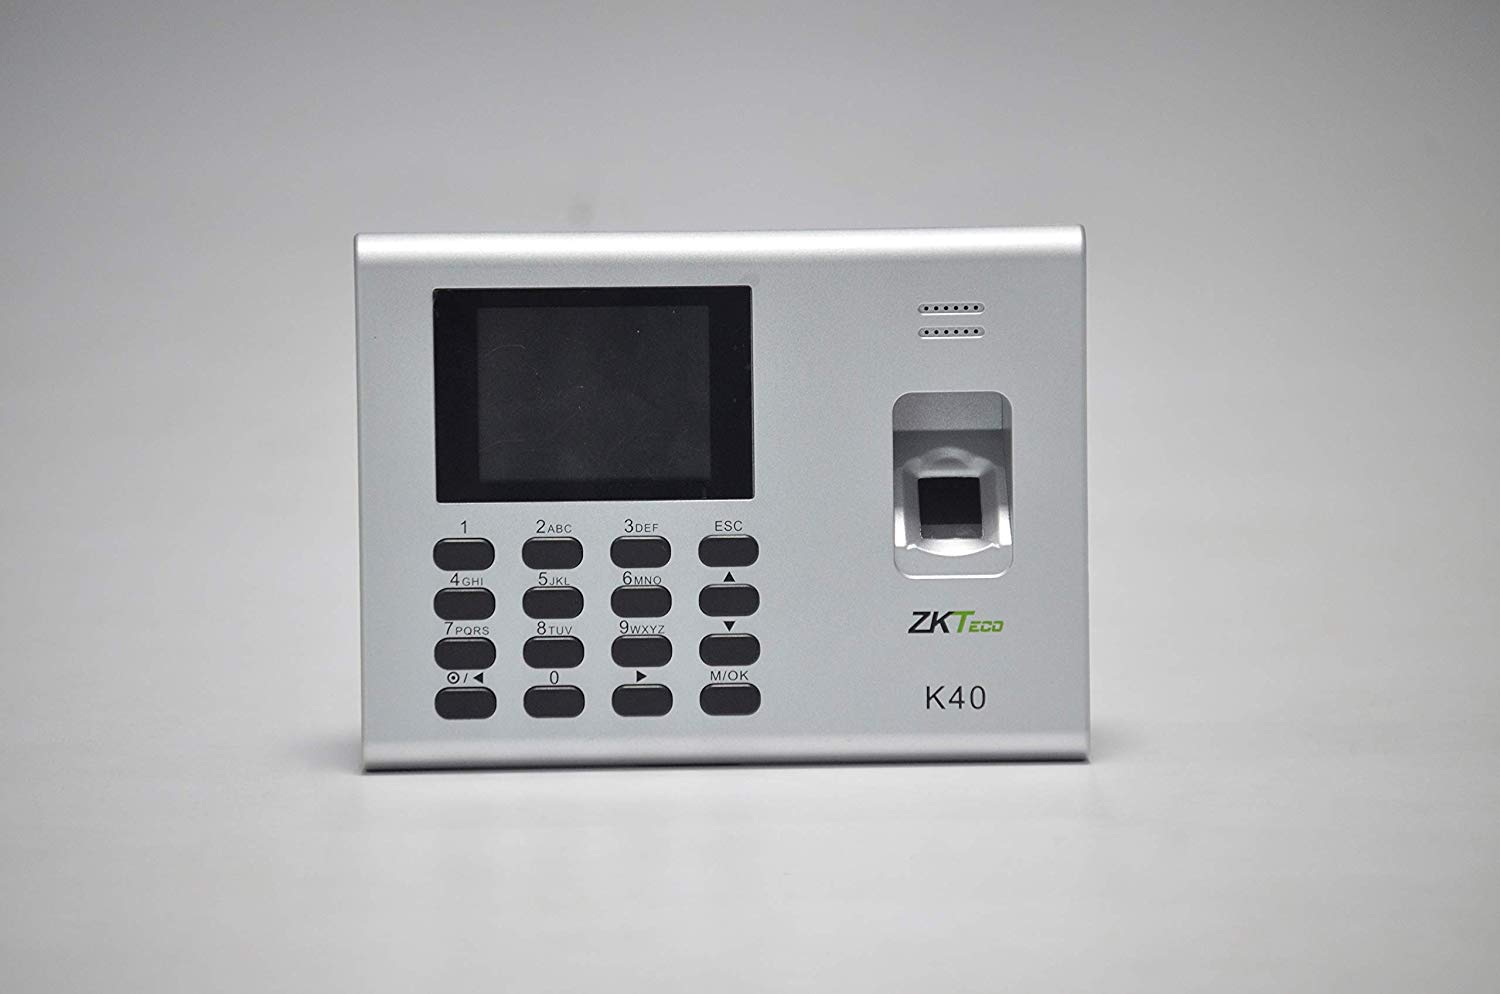 ZKTeco K40 price in Bangladesh